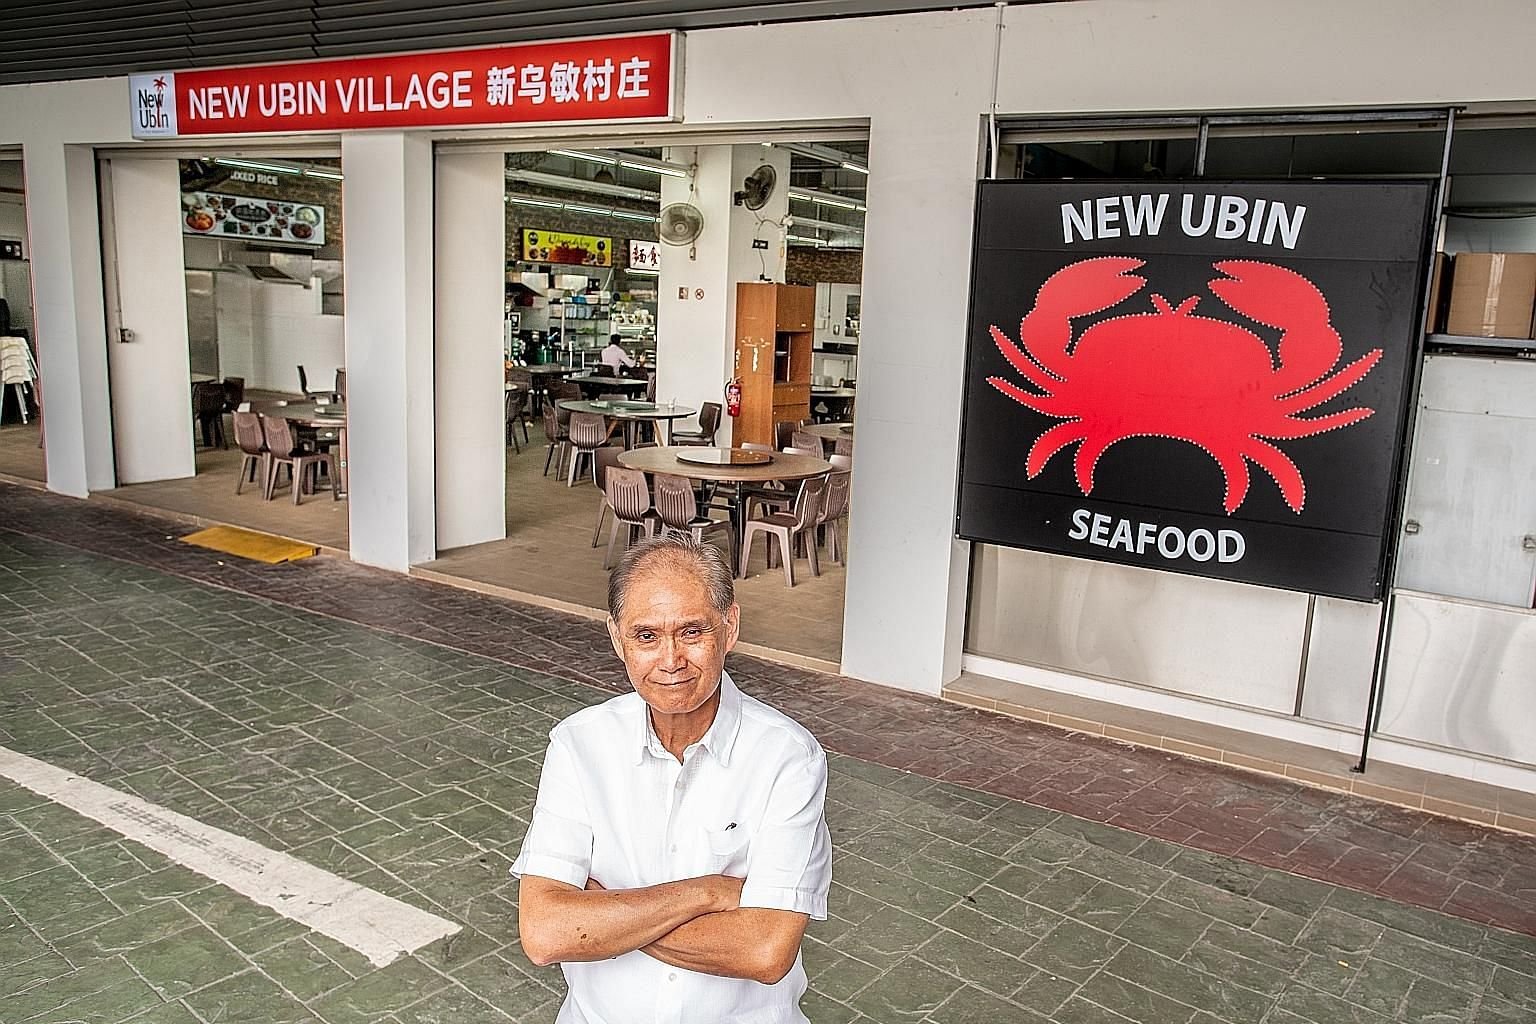 New Ubin Group dished out some of its orders late on Mother's Day, but it has since learnt to manage operations better. Co-founder Pang Seng Meng (above) says it is ready to launch UbinEats, which offers one-person meals.